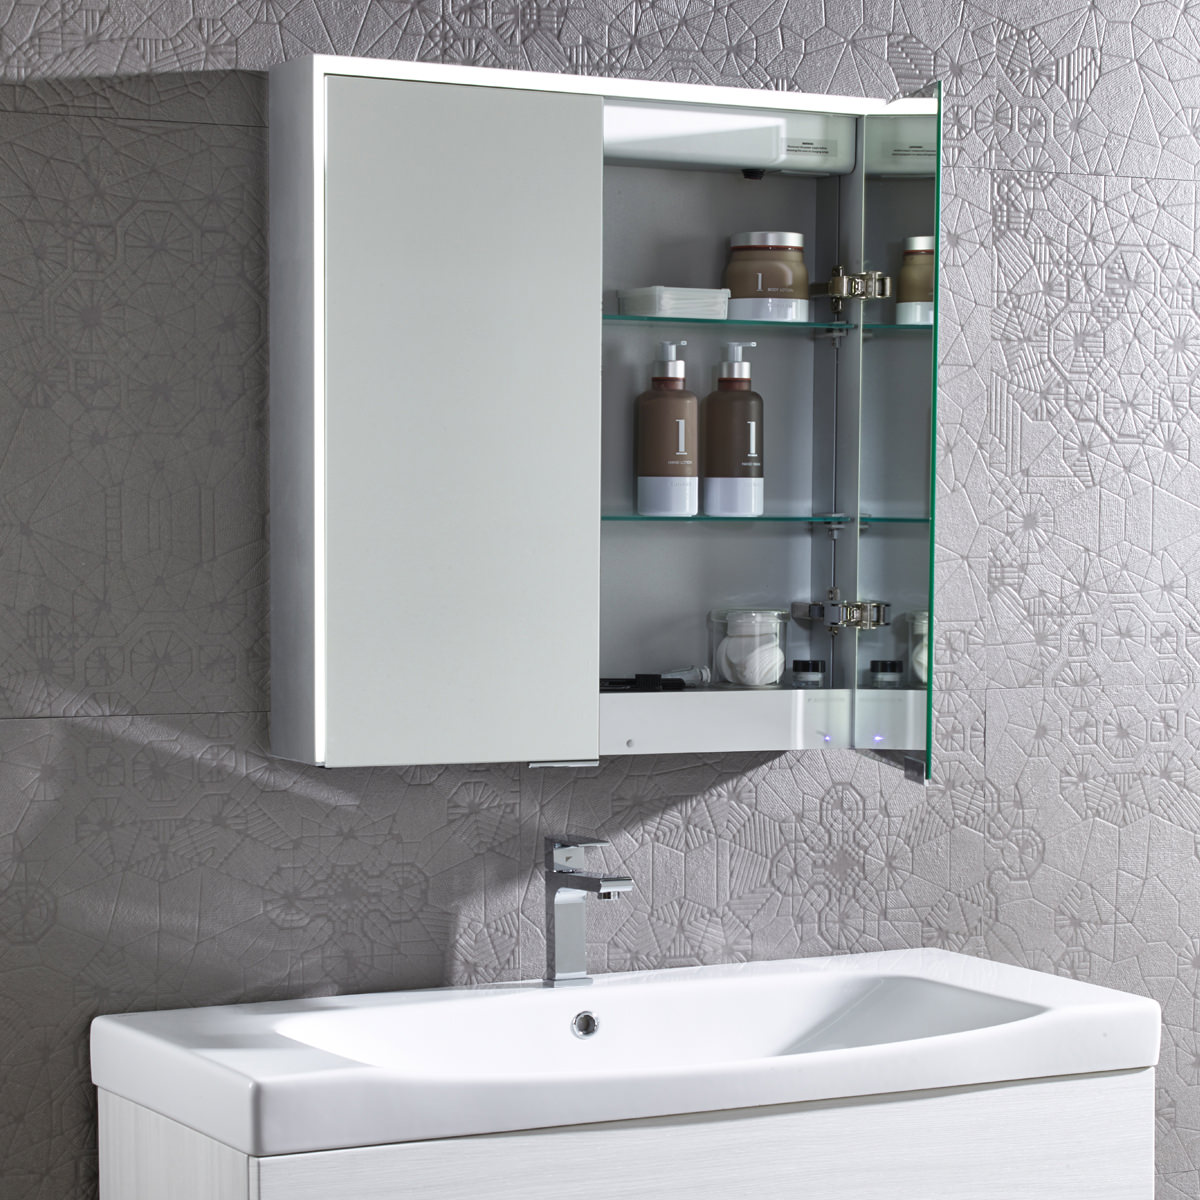 Bathroom Cabinet With Mirror Roper Rhodes Compose Bluetooth Mirror Cabinet Cp65al